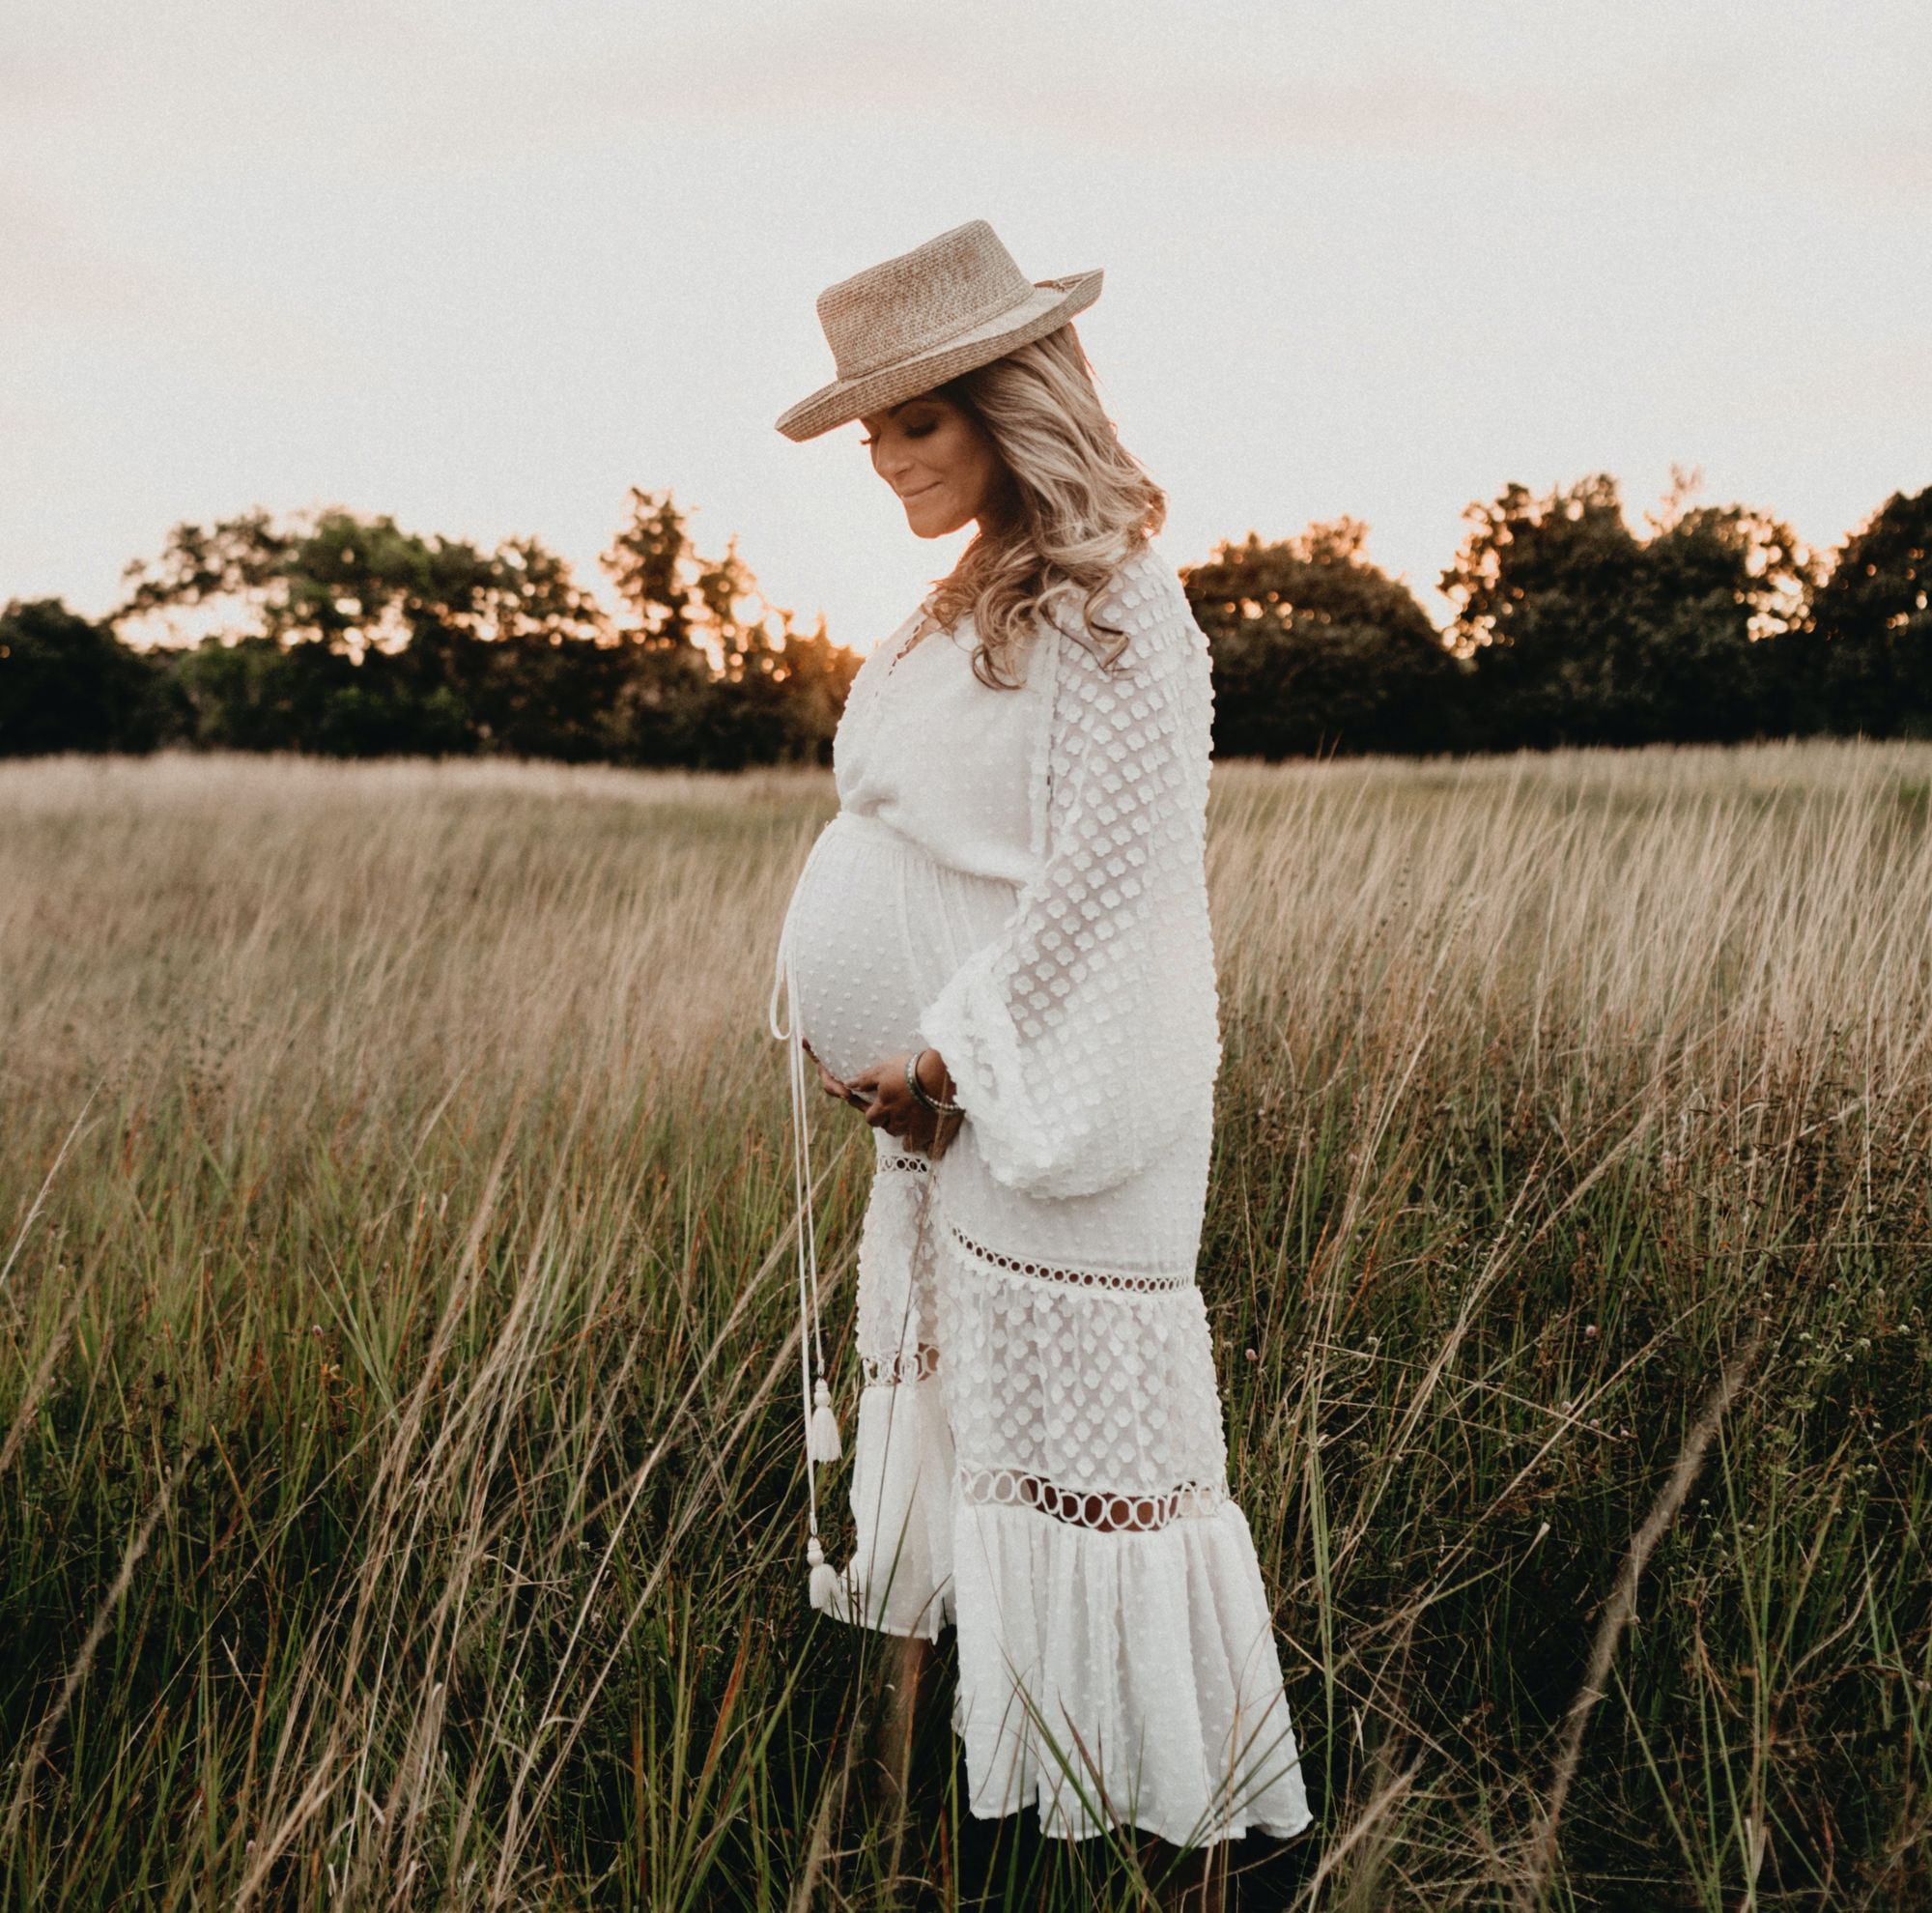 Summer Maternity Clothes – How to Style Your Bump